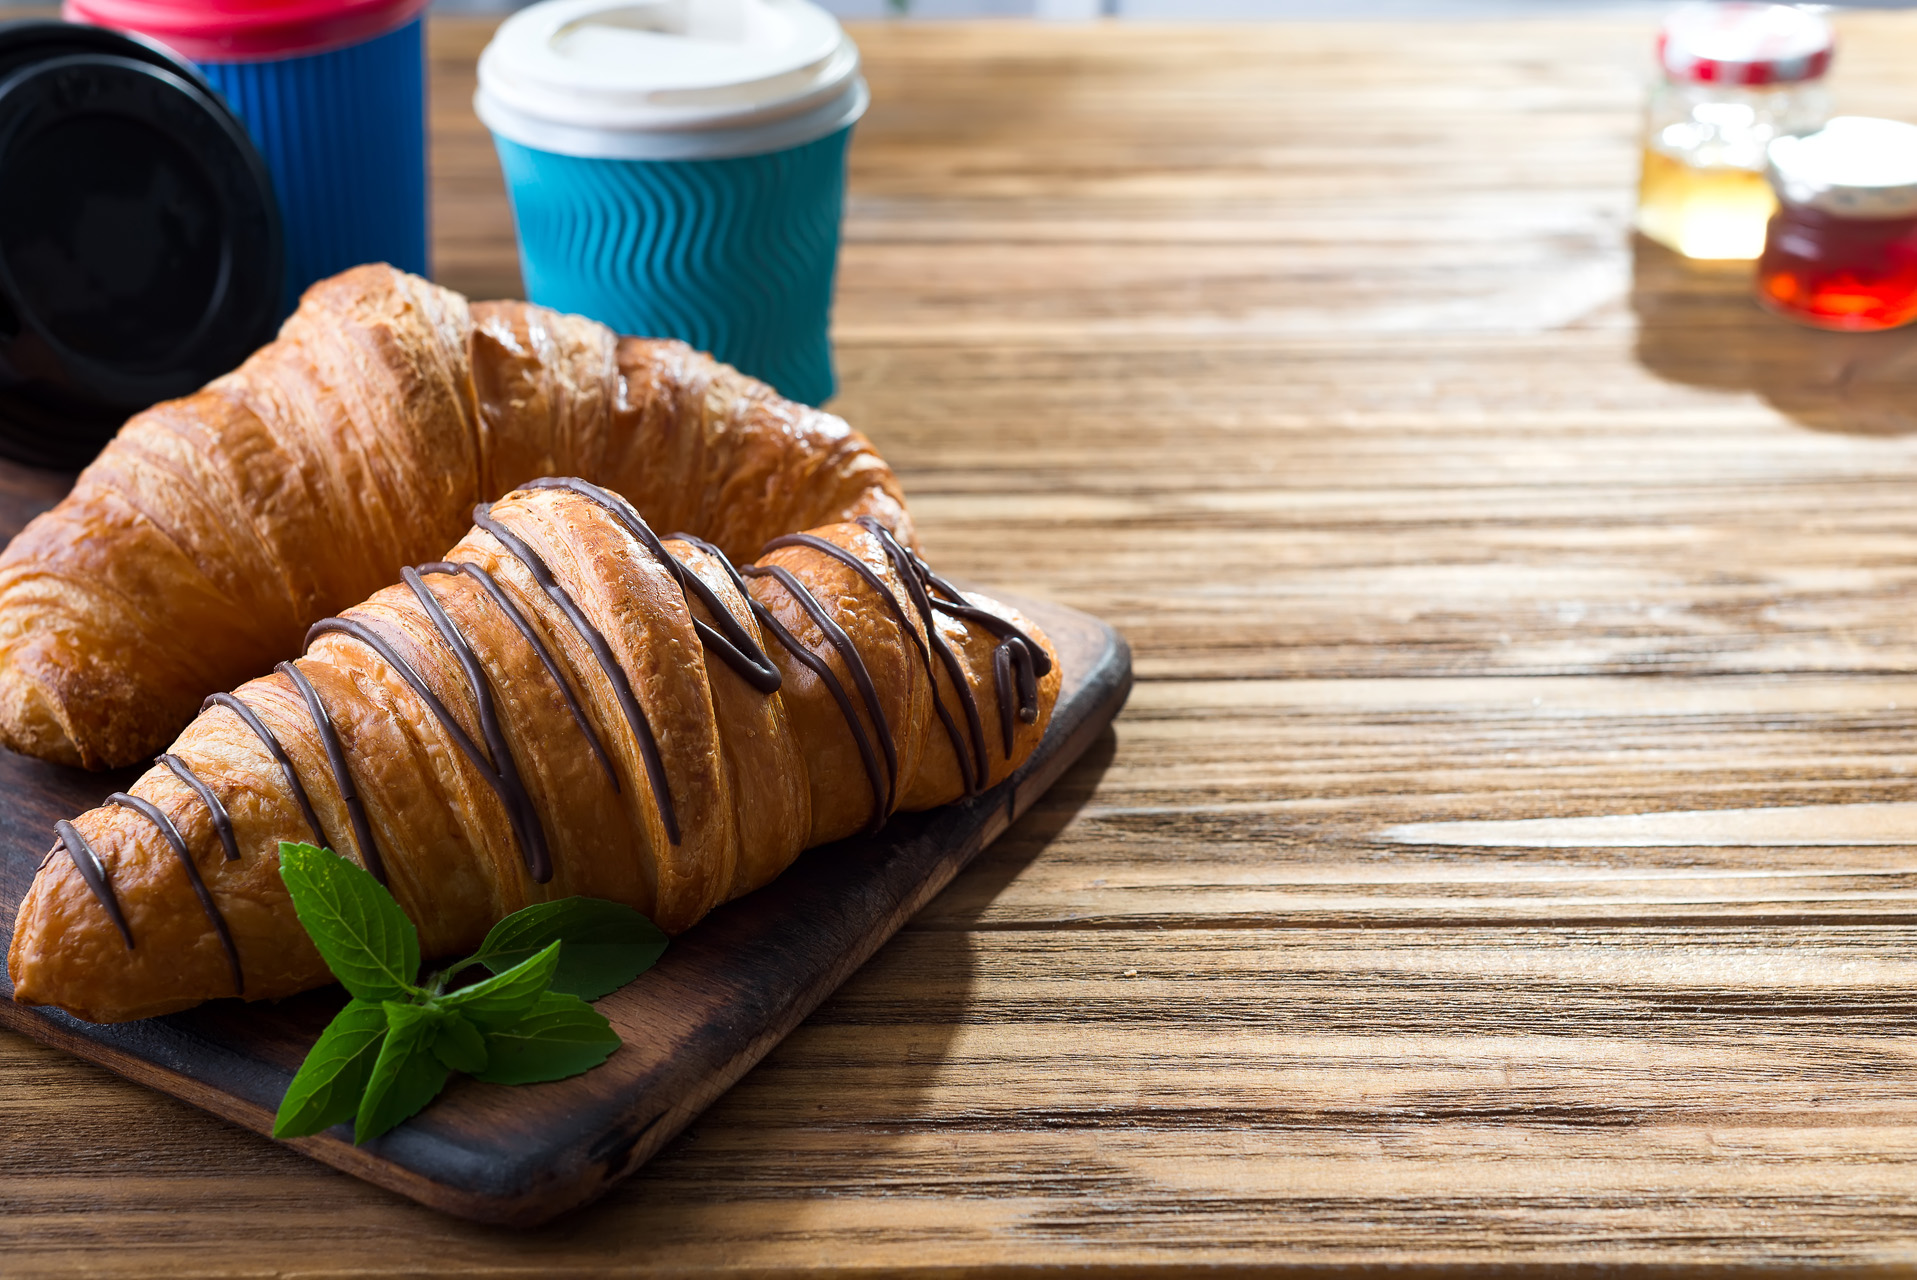 cups of coffee and two croissants on the street in Croissant Cafe. Inscripton on cup - Croissant Cafe. Breakfast to go